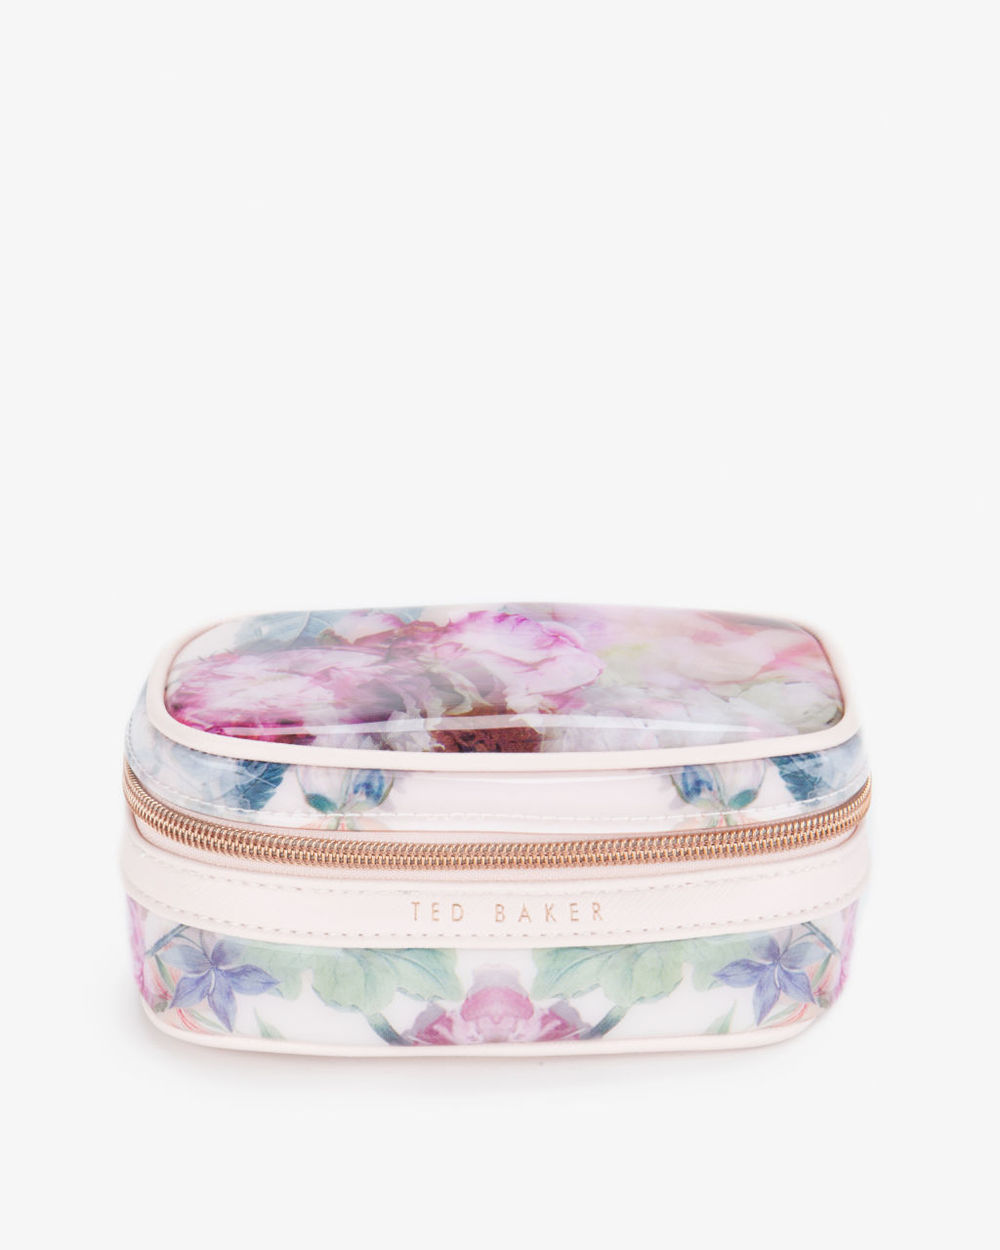 Lasco Pure Peony Jewellery Case | Ted Baker ($65 USD)